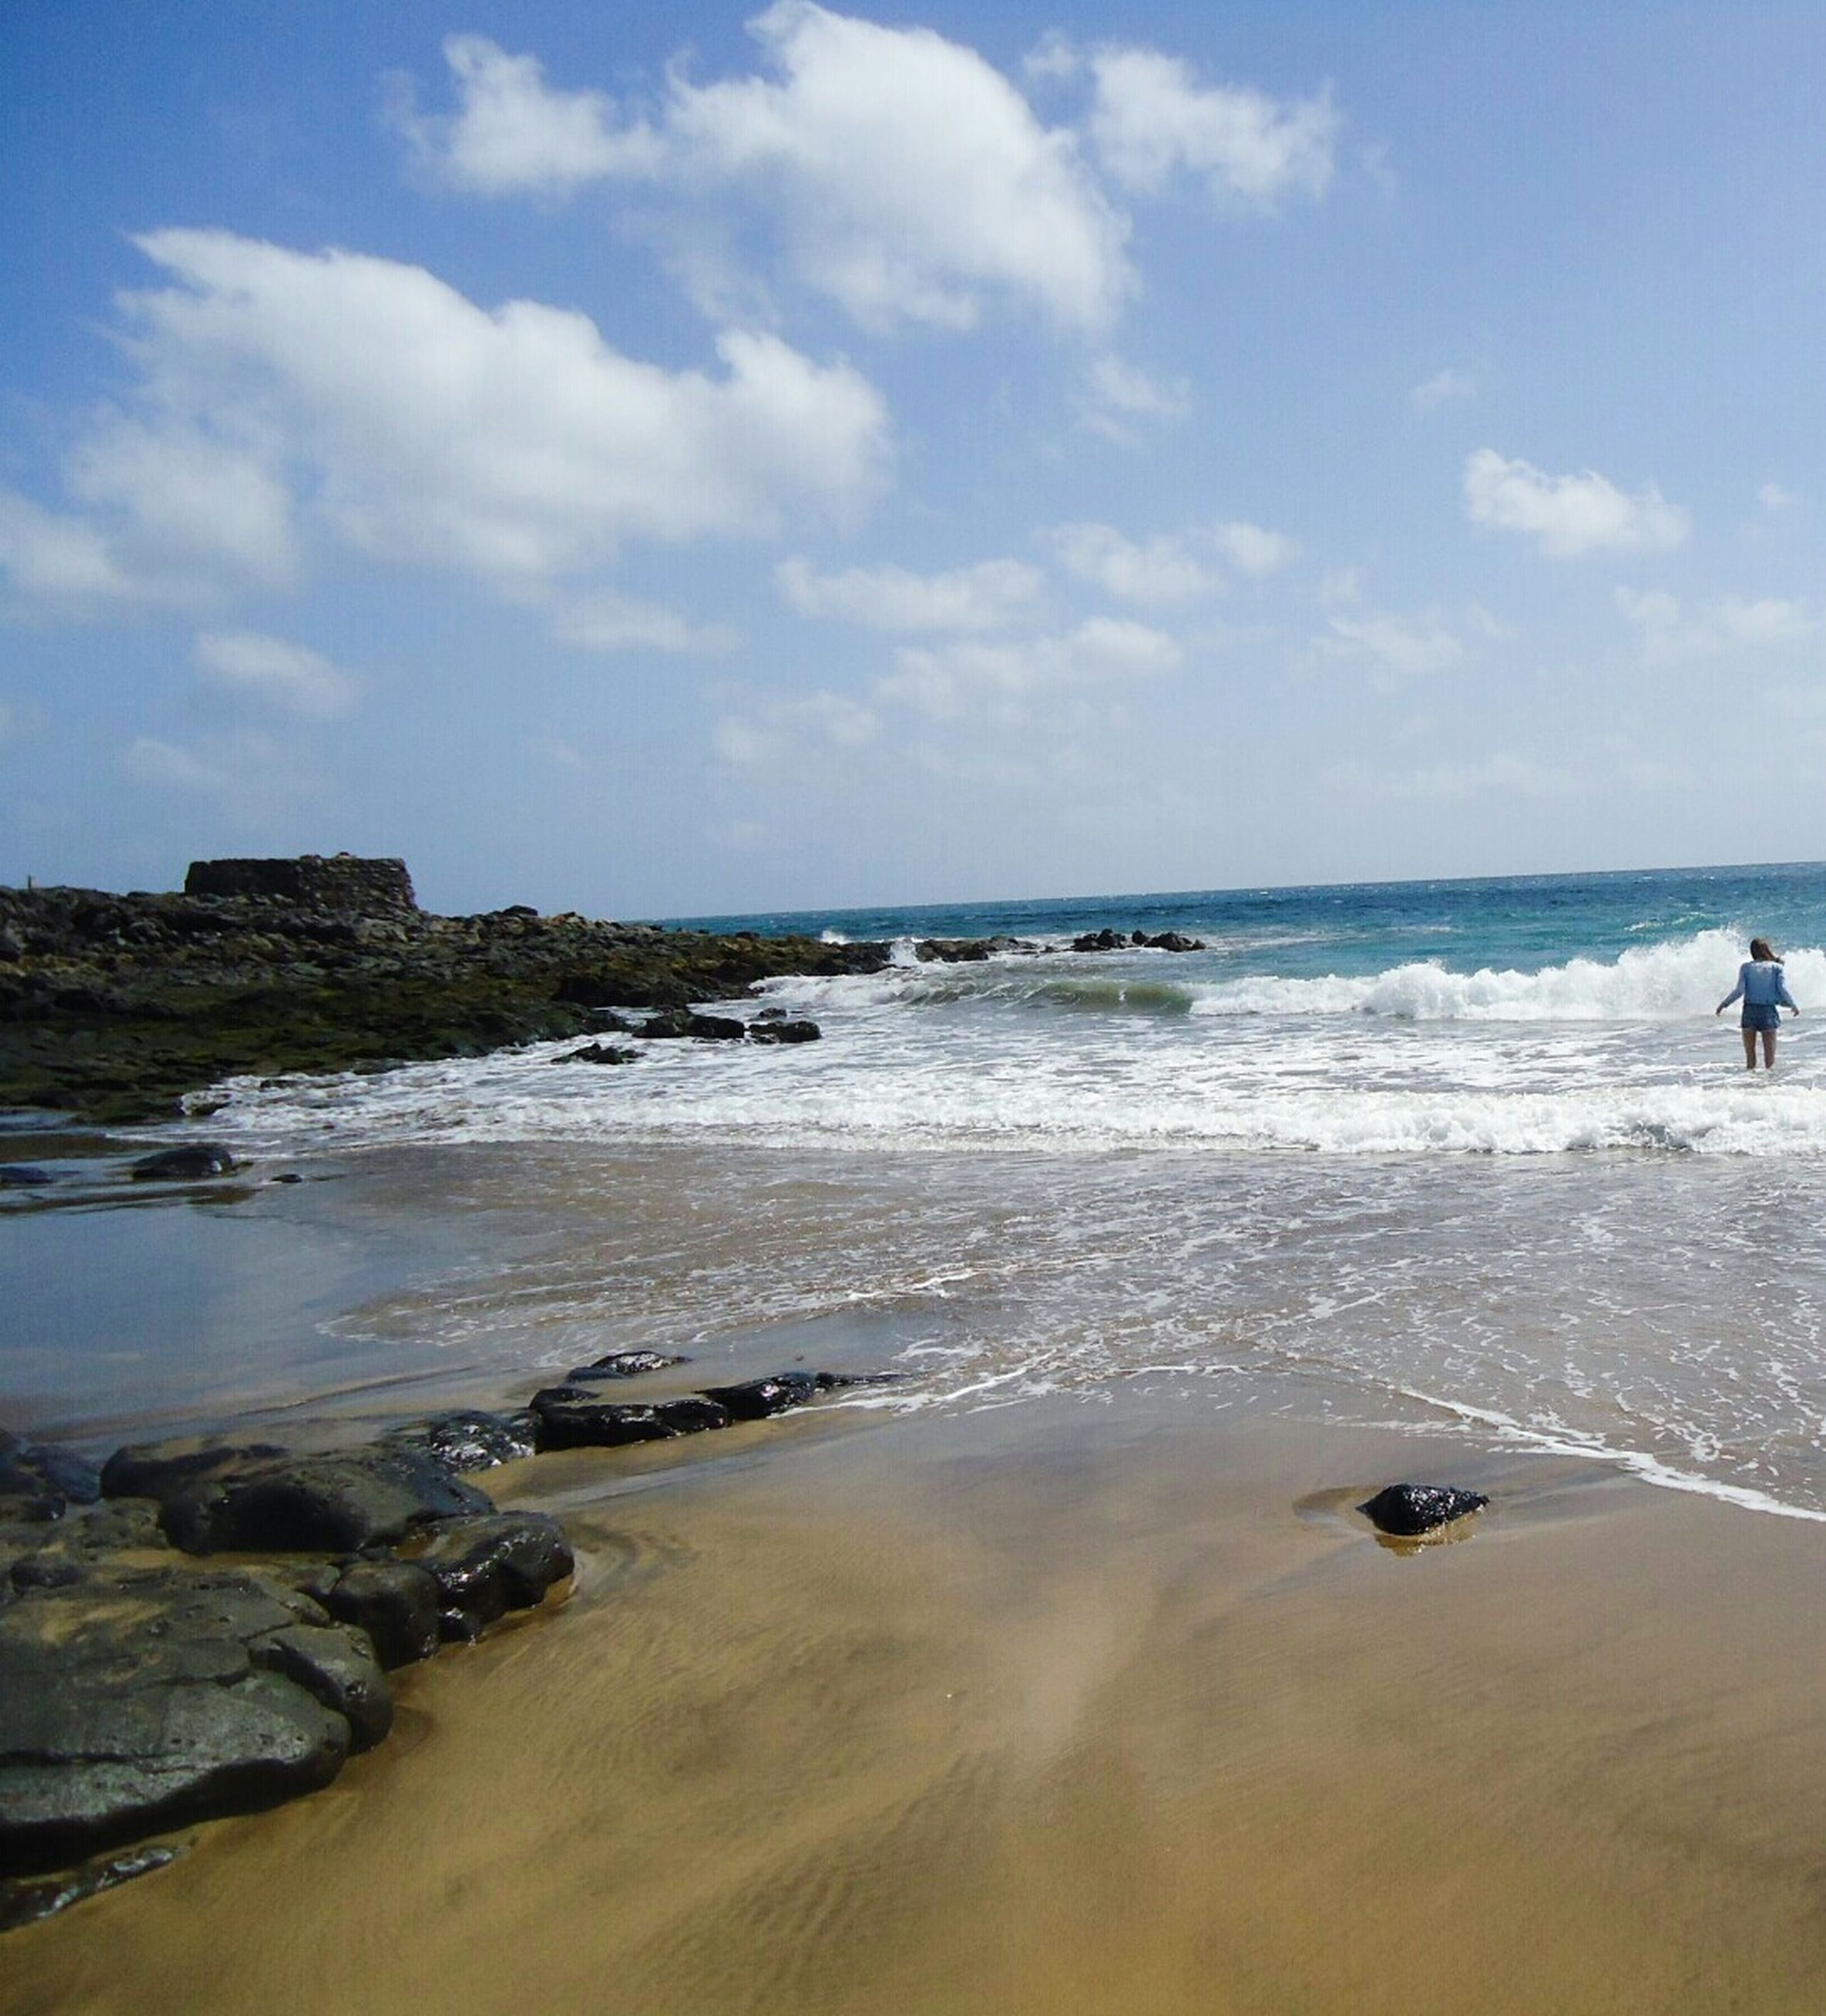 sea, water, beach, horizon over water, sky, wave, shore, scenics, beauty in nature, surf, cloud - sky, tranquil scene, nature, tranquility, sand, cloud, rock - object, motion, idyllic